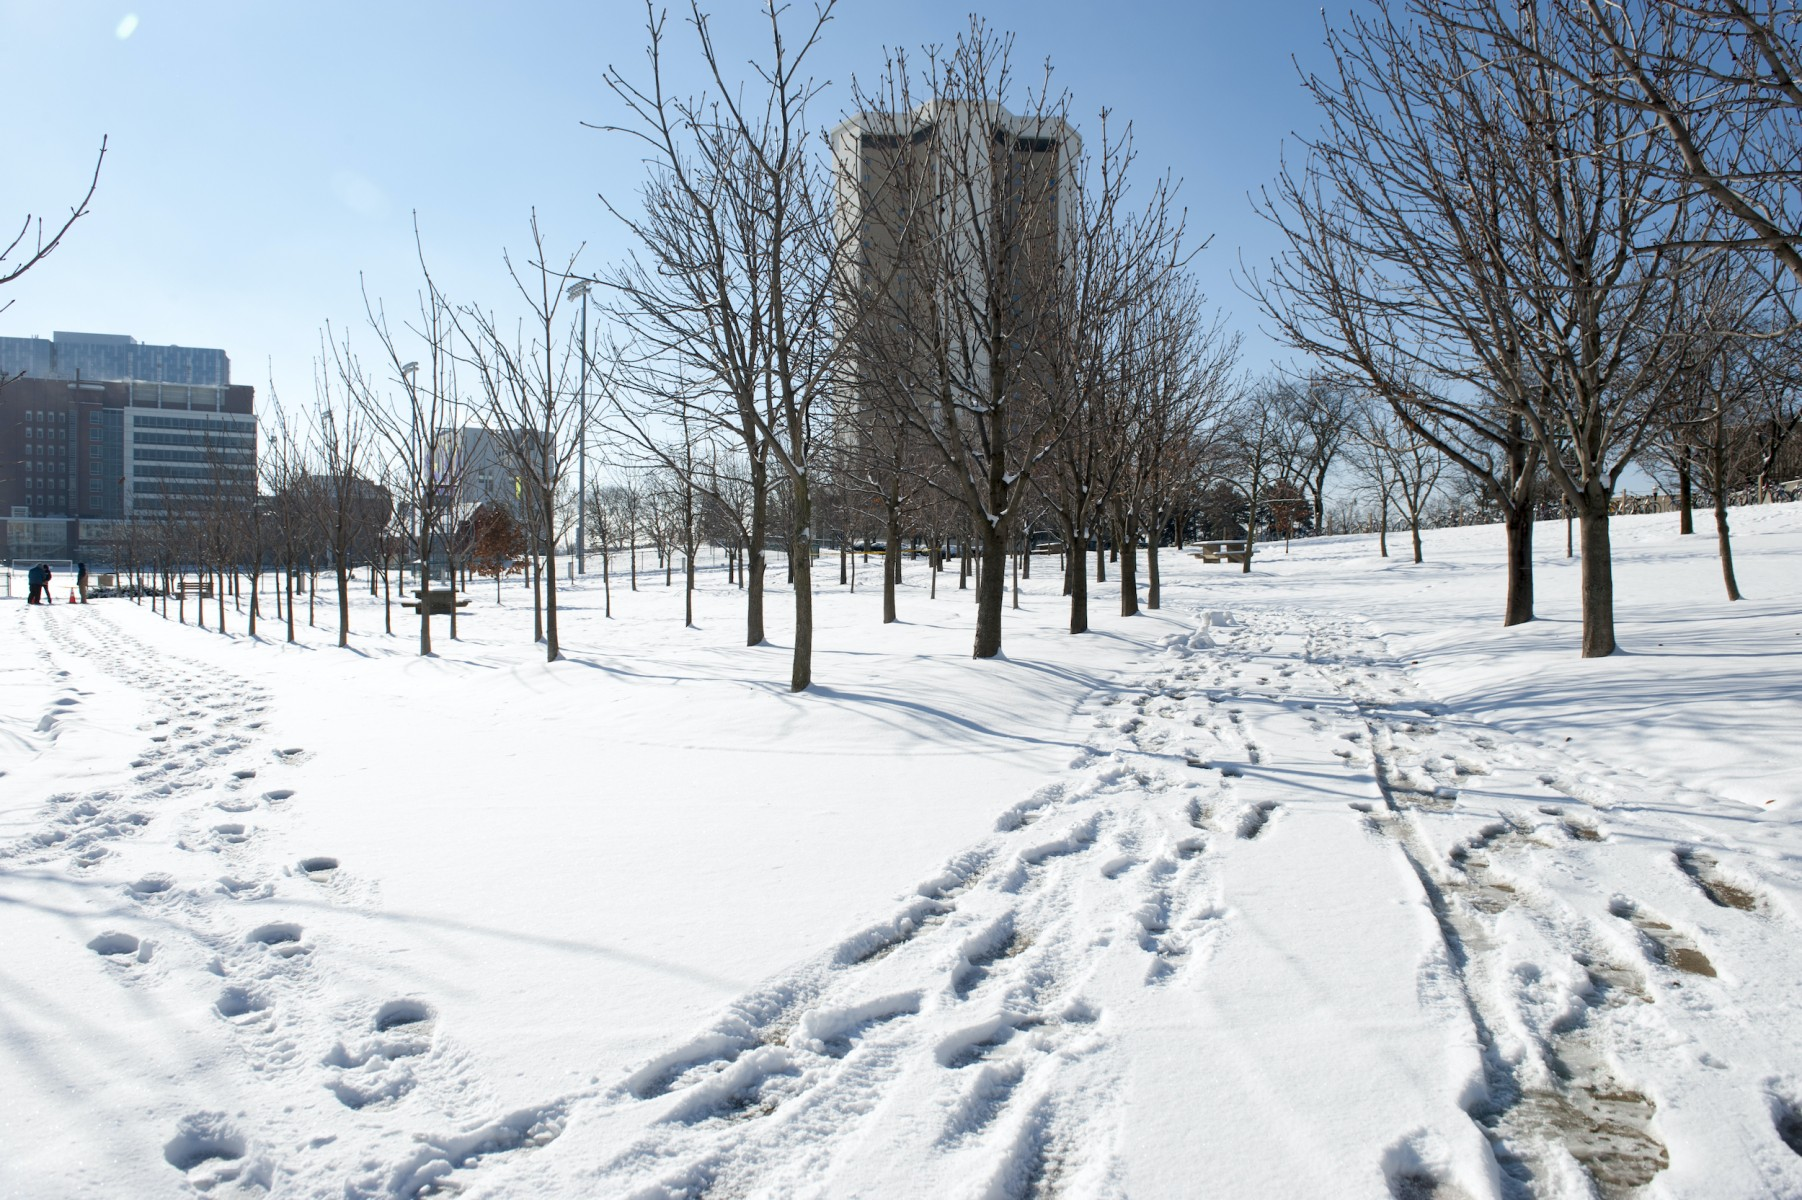 Winter on the Columbus campus